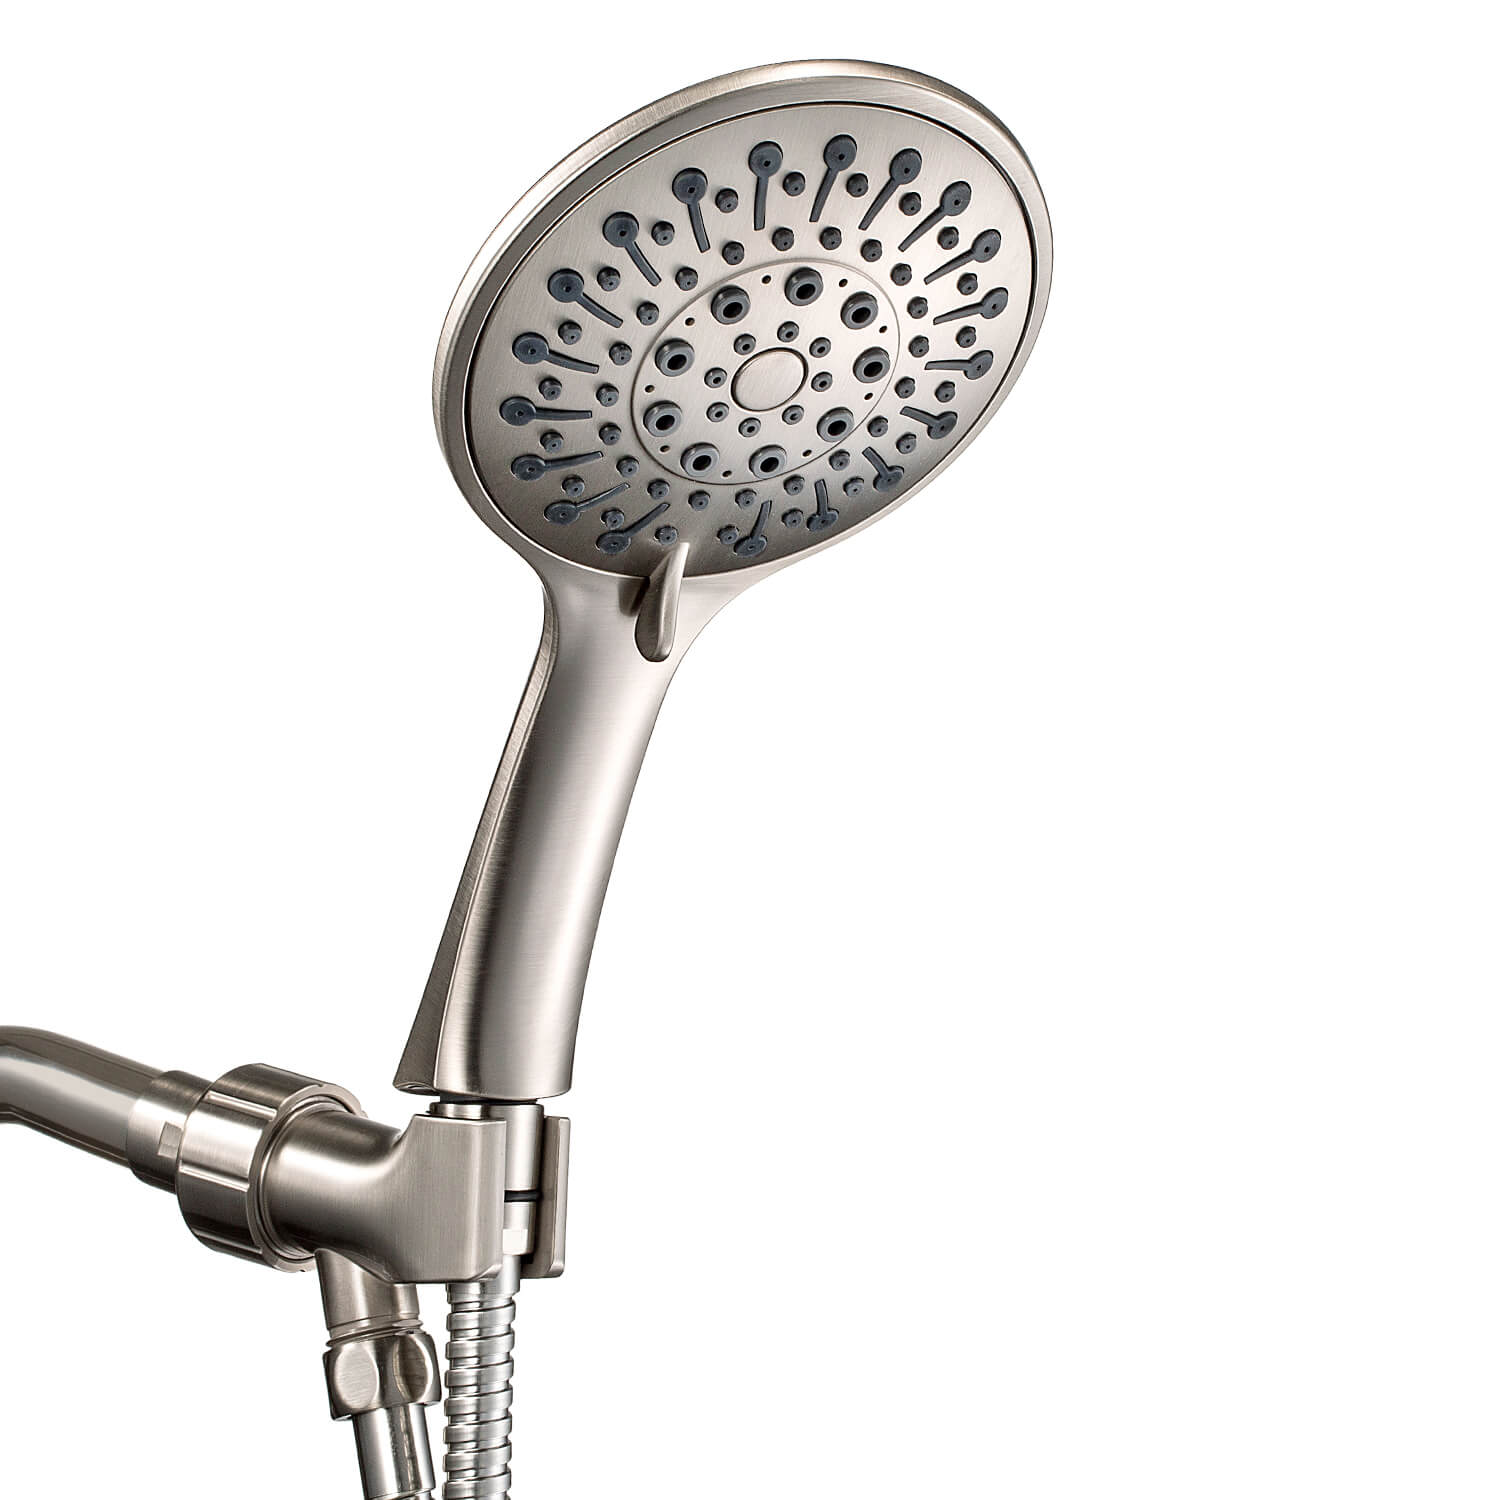 Shower Head Anzasupply